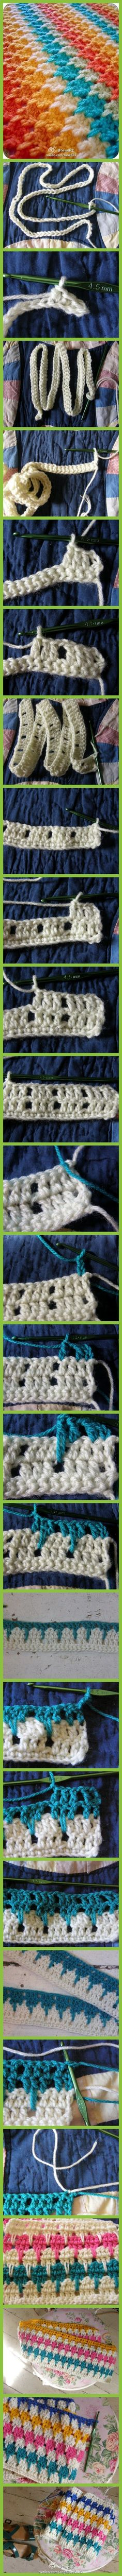 Crochet Stitch - Tutorial for Crochet, Knitting, Crafts. Diy Tricot Crochet, Knit Or Crochet, Learn To Crochet, Crochet Crafts, Crochet Hooks, Crochet Baby, Crochet Afghans, Crochet Blankets, Diy Crafts